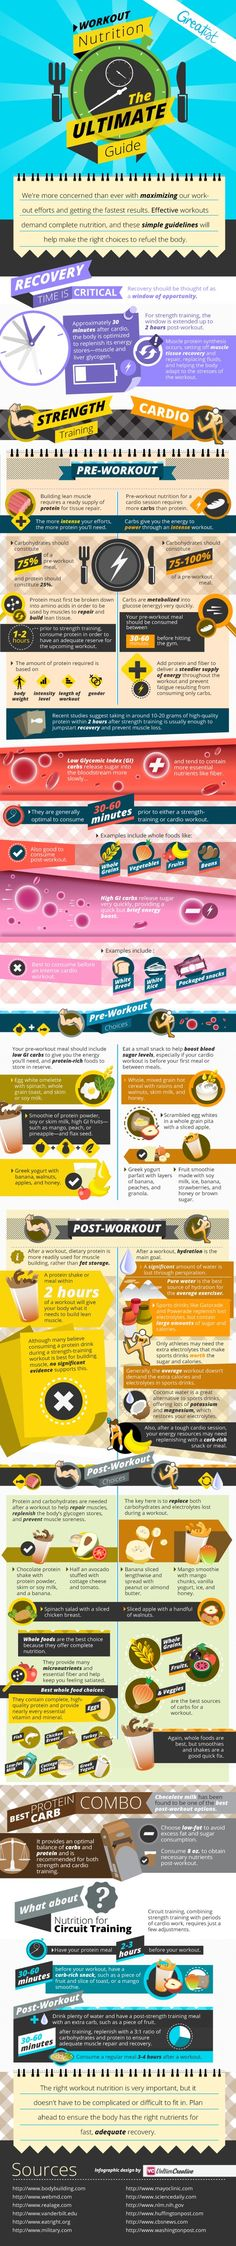 workout nutrition, the ultimate guide: Awesome breakdown of pre-post workout nutrition for types of workouts